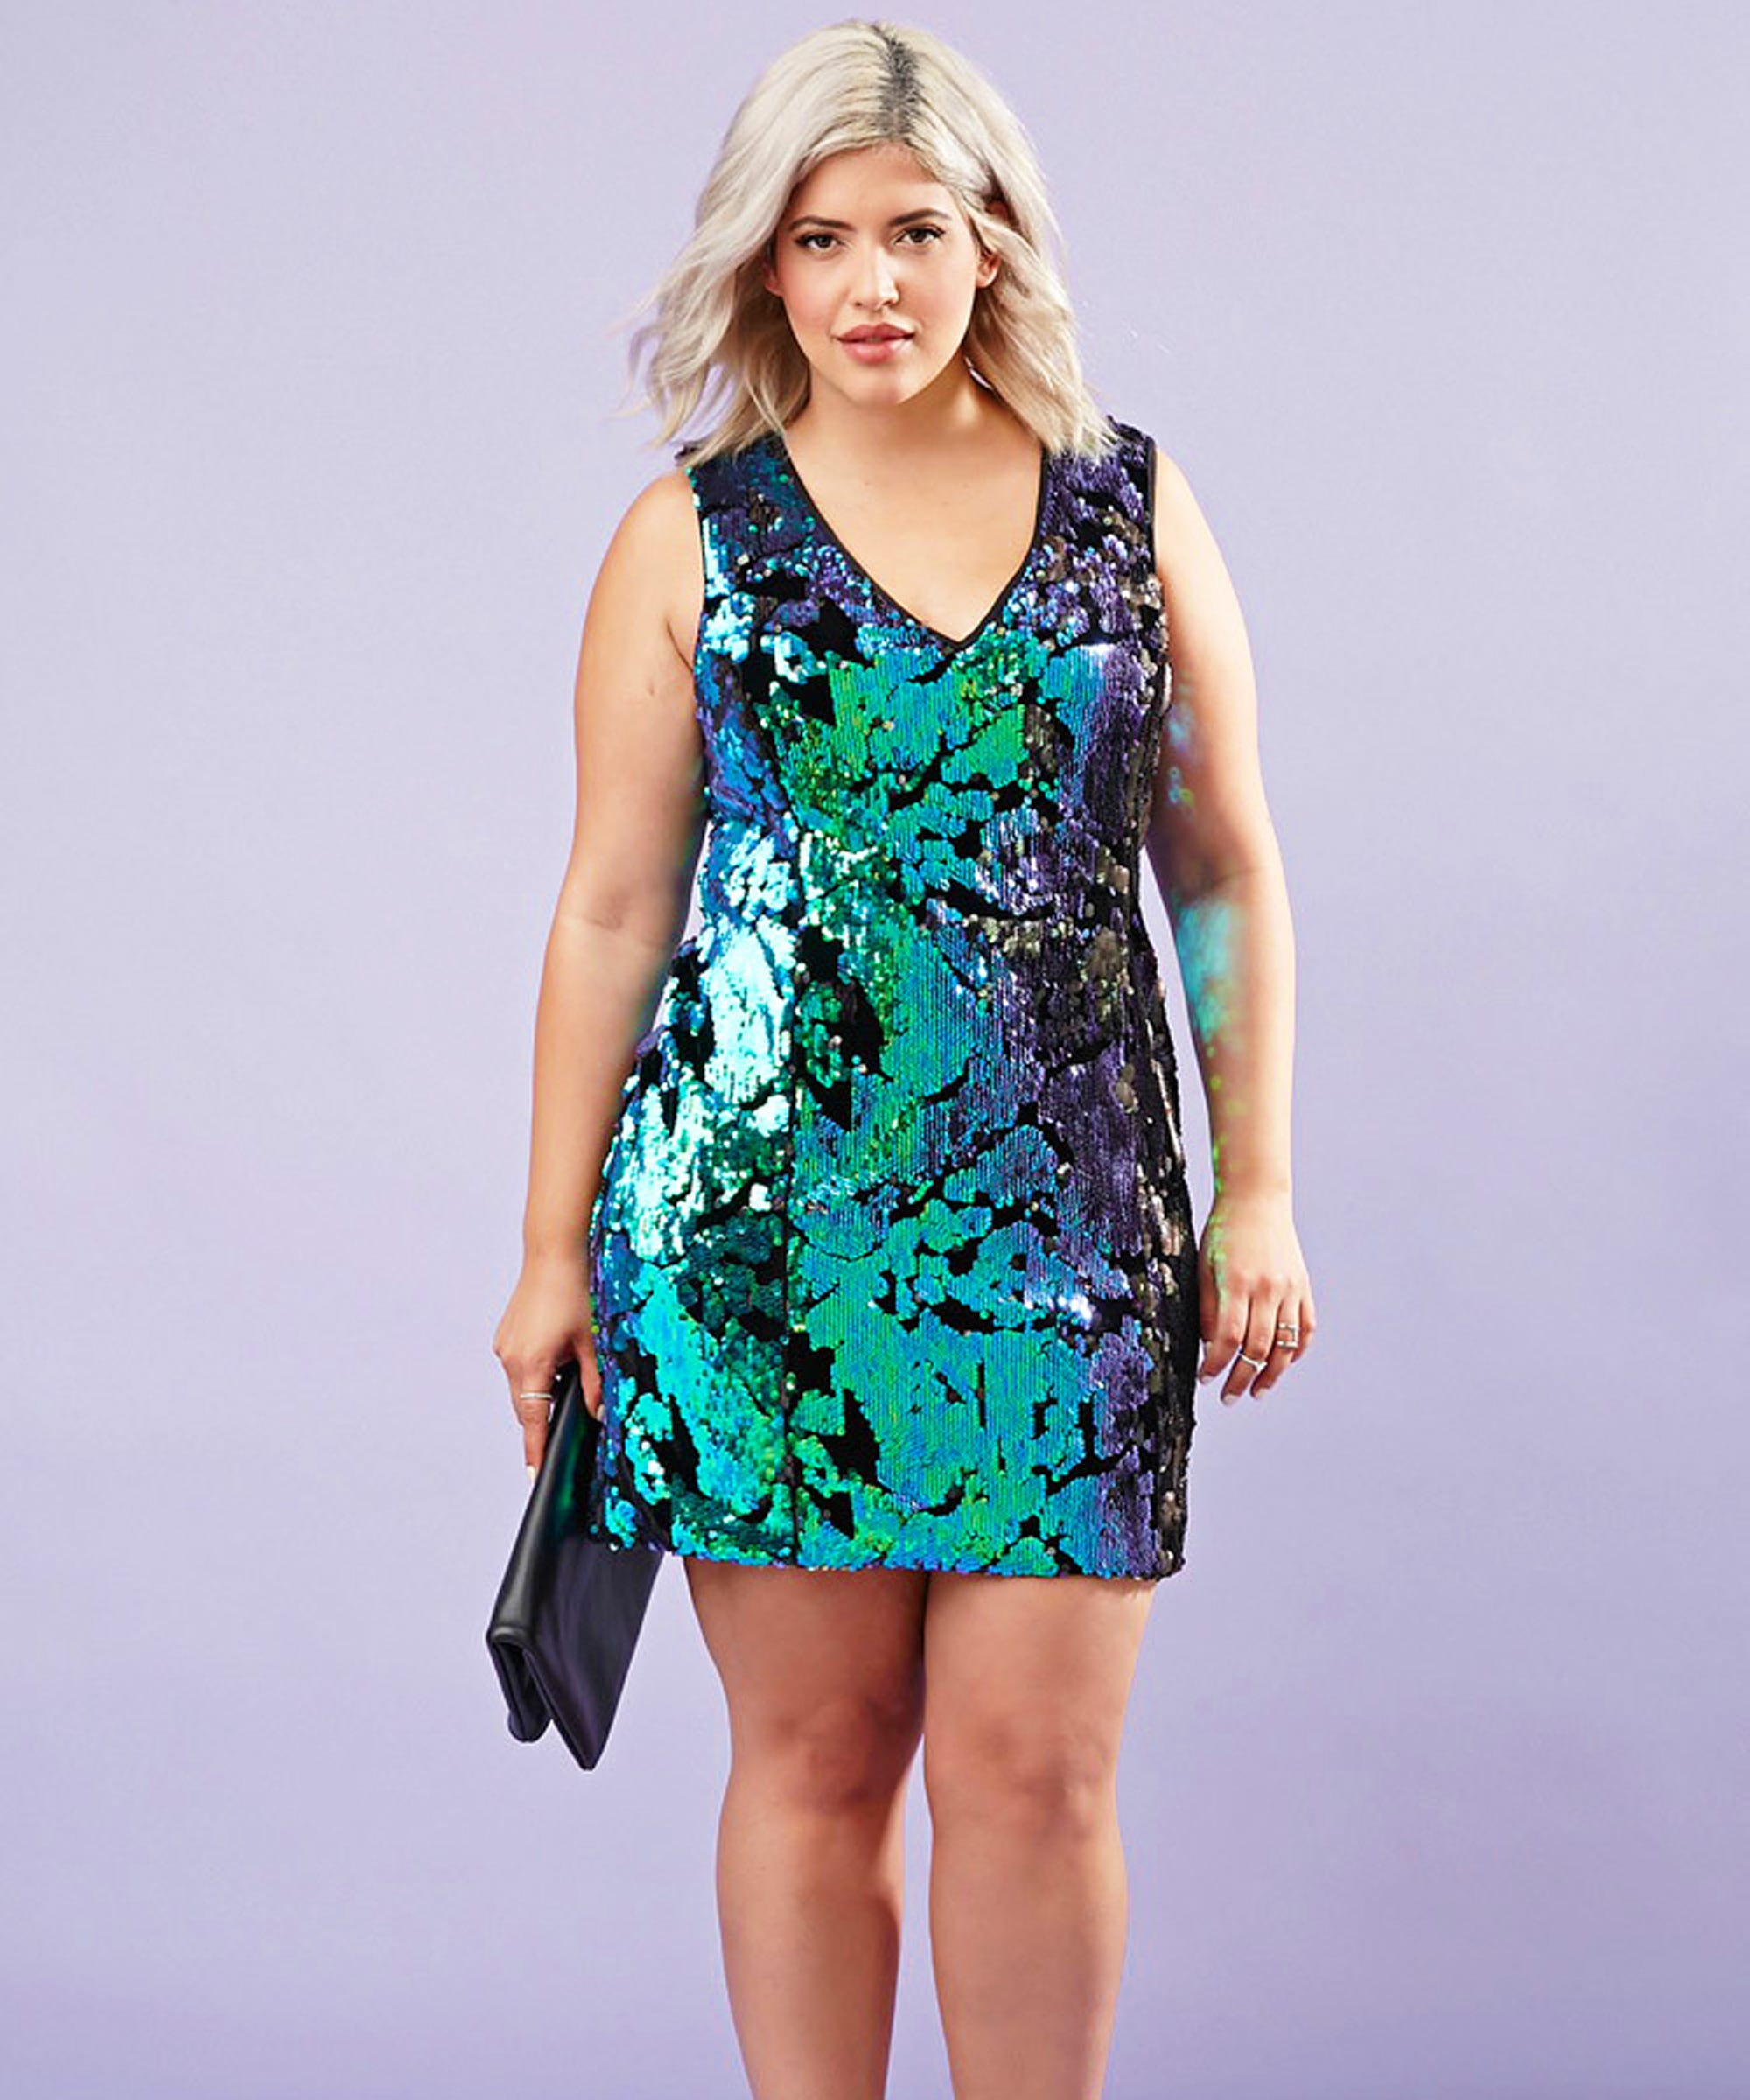 67d70afbb3 Plus Size Dresses Holiday Outfits